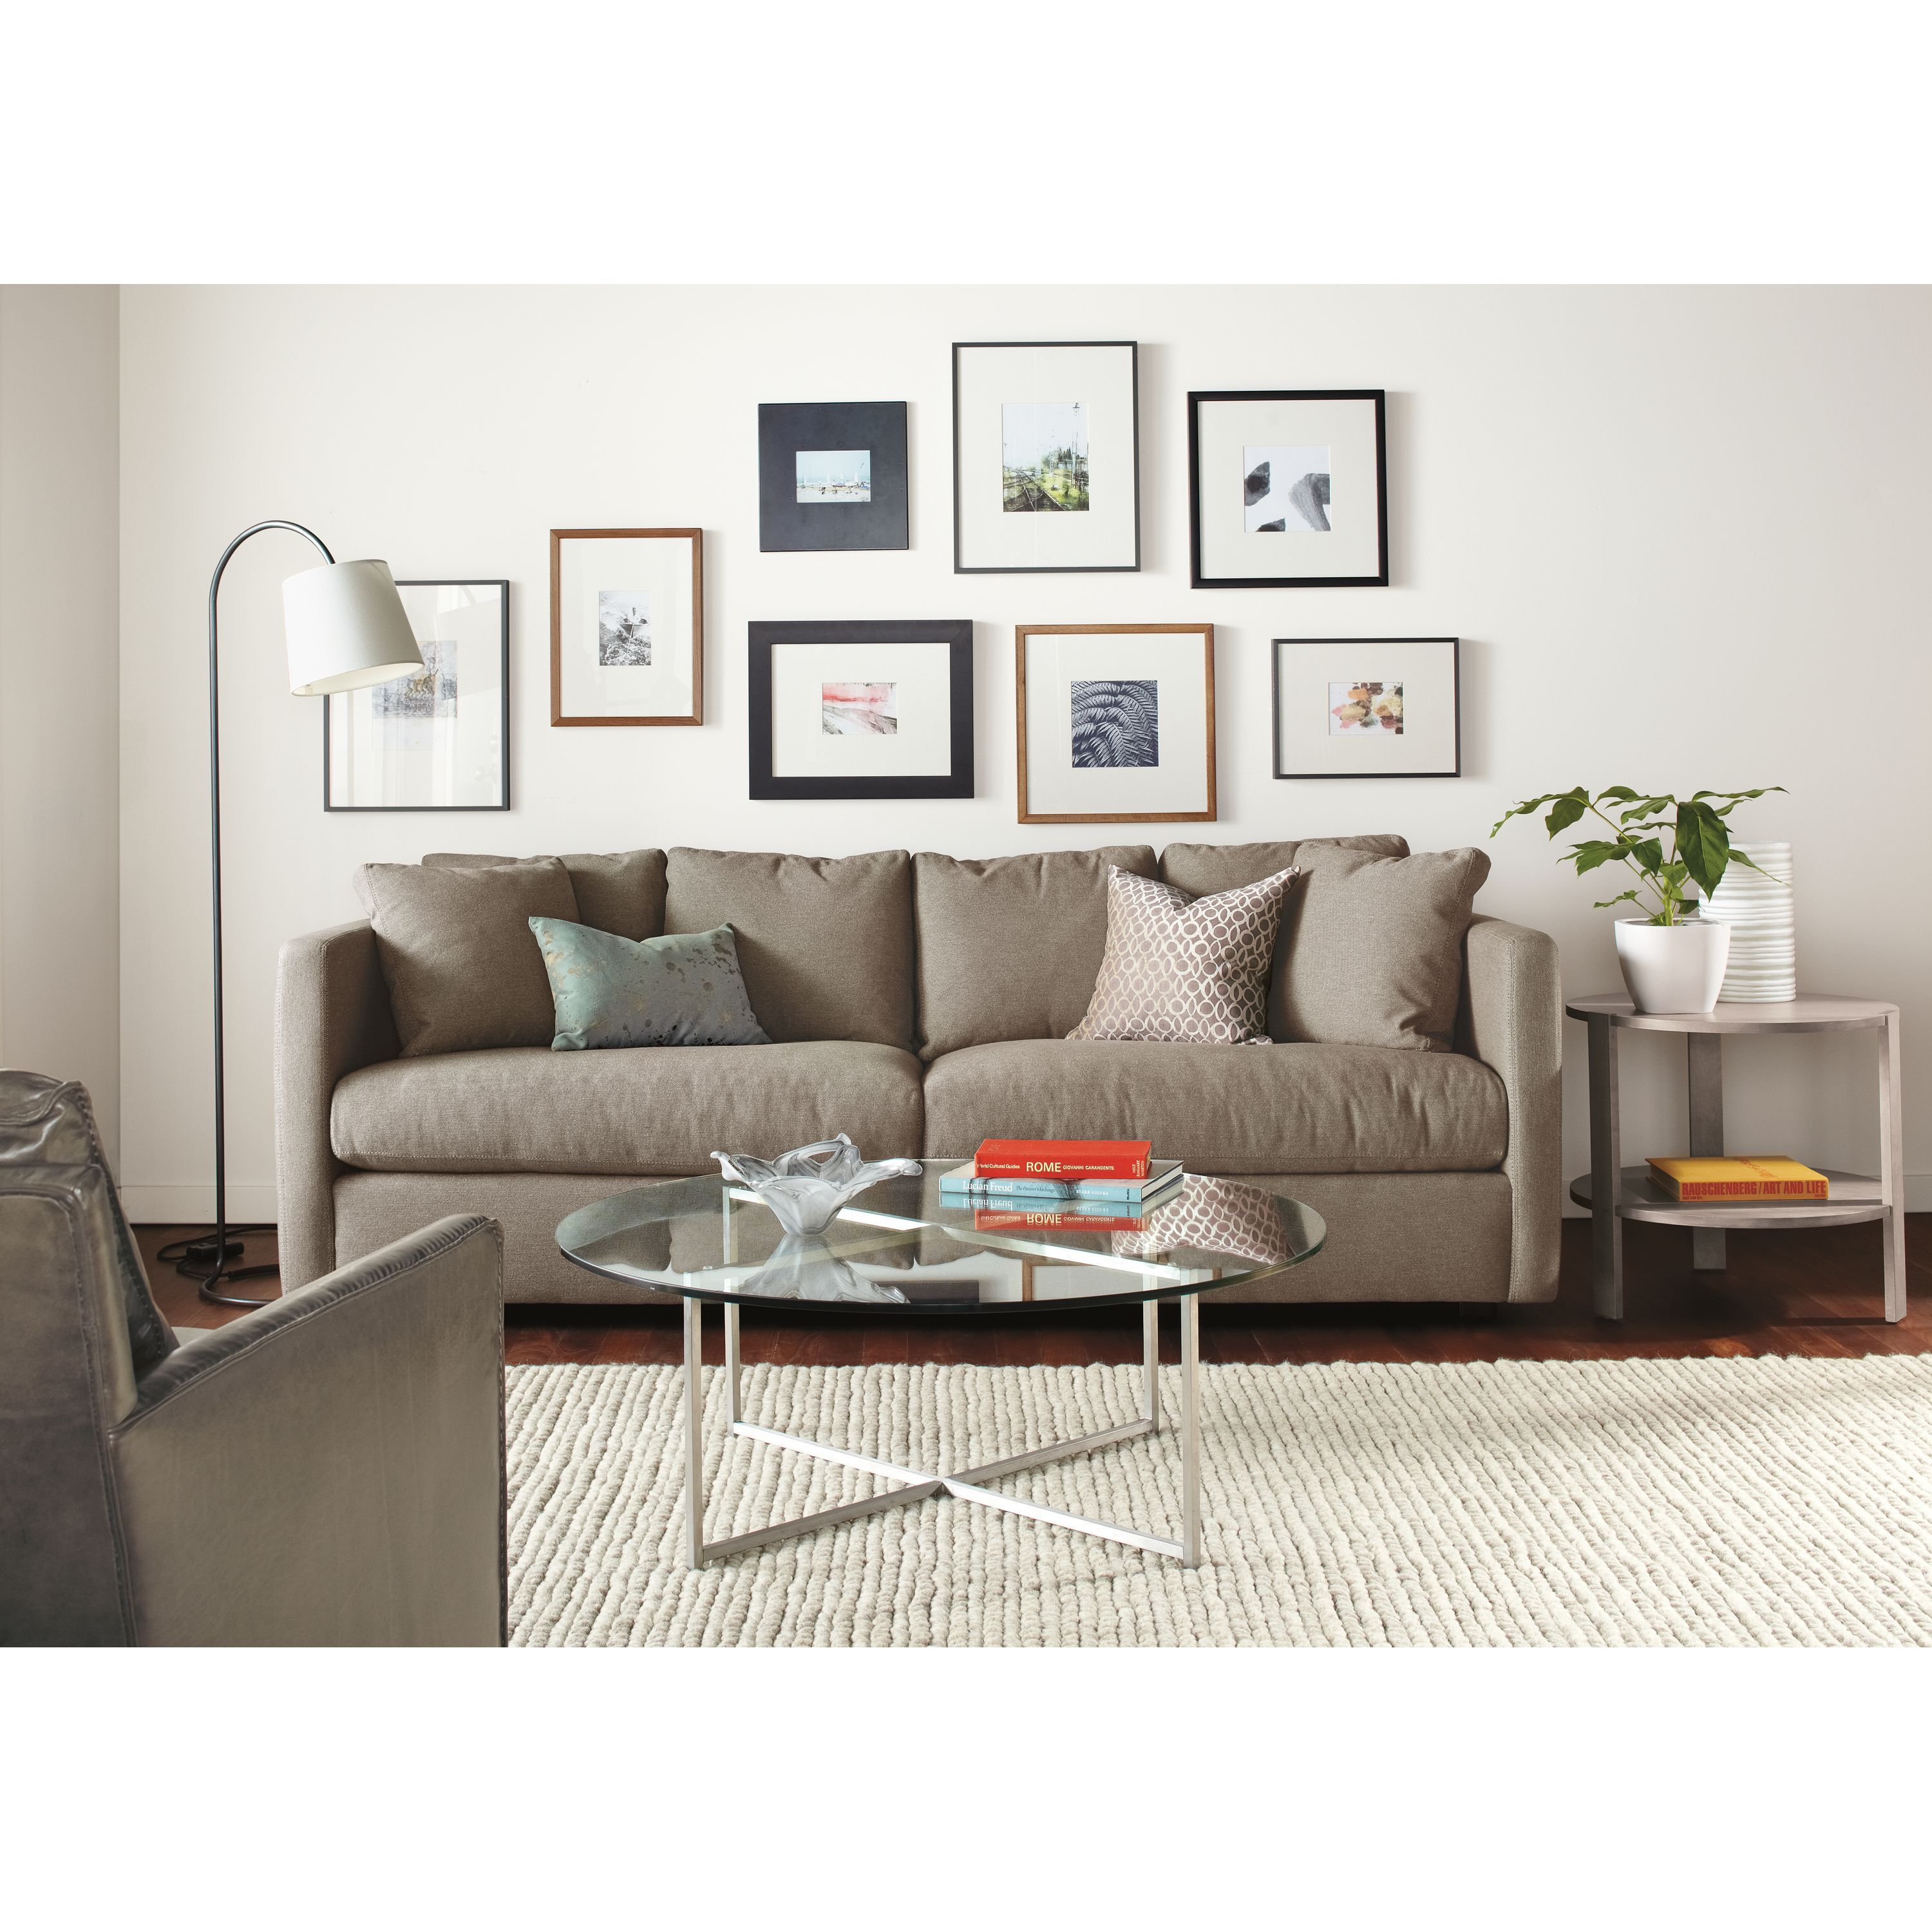 - Classic Cocktail Tables In Stainless Steel - Modern Coffee Tables